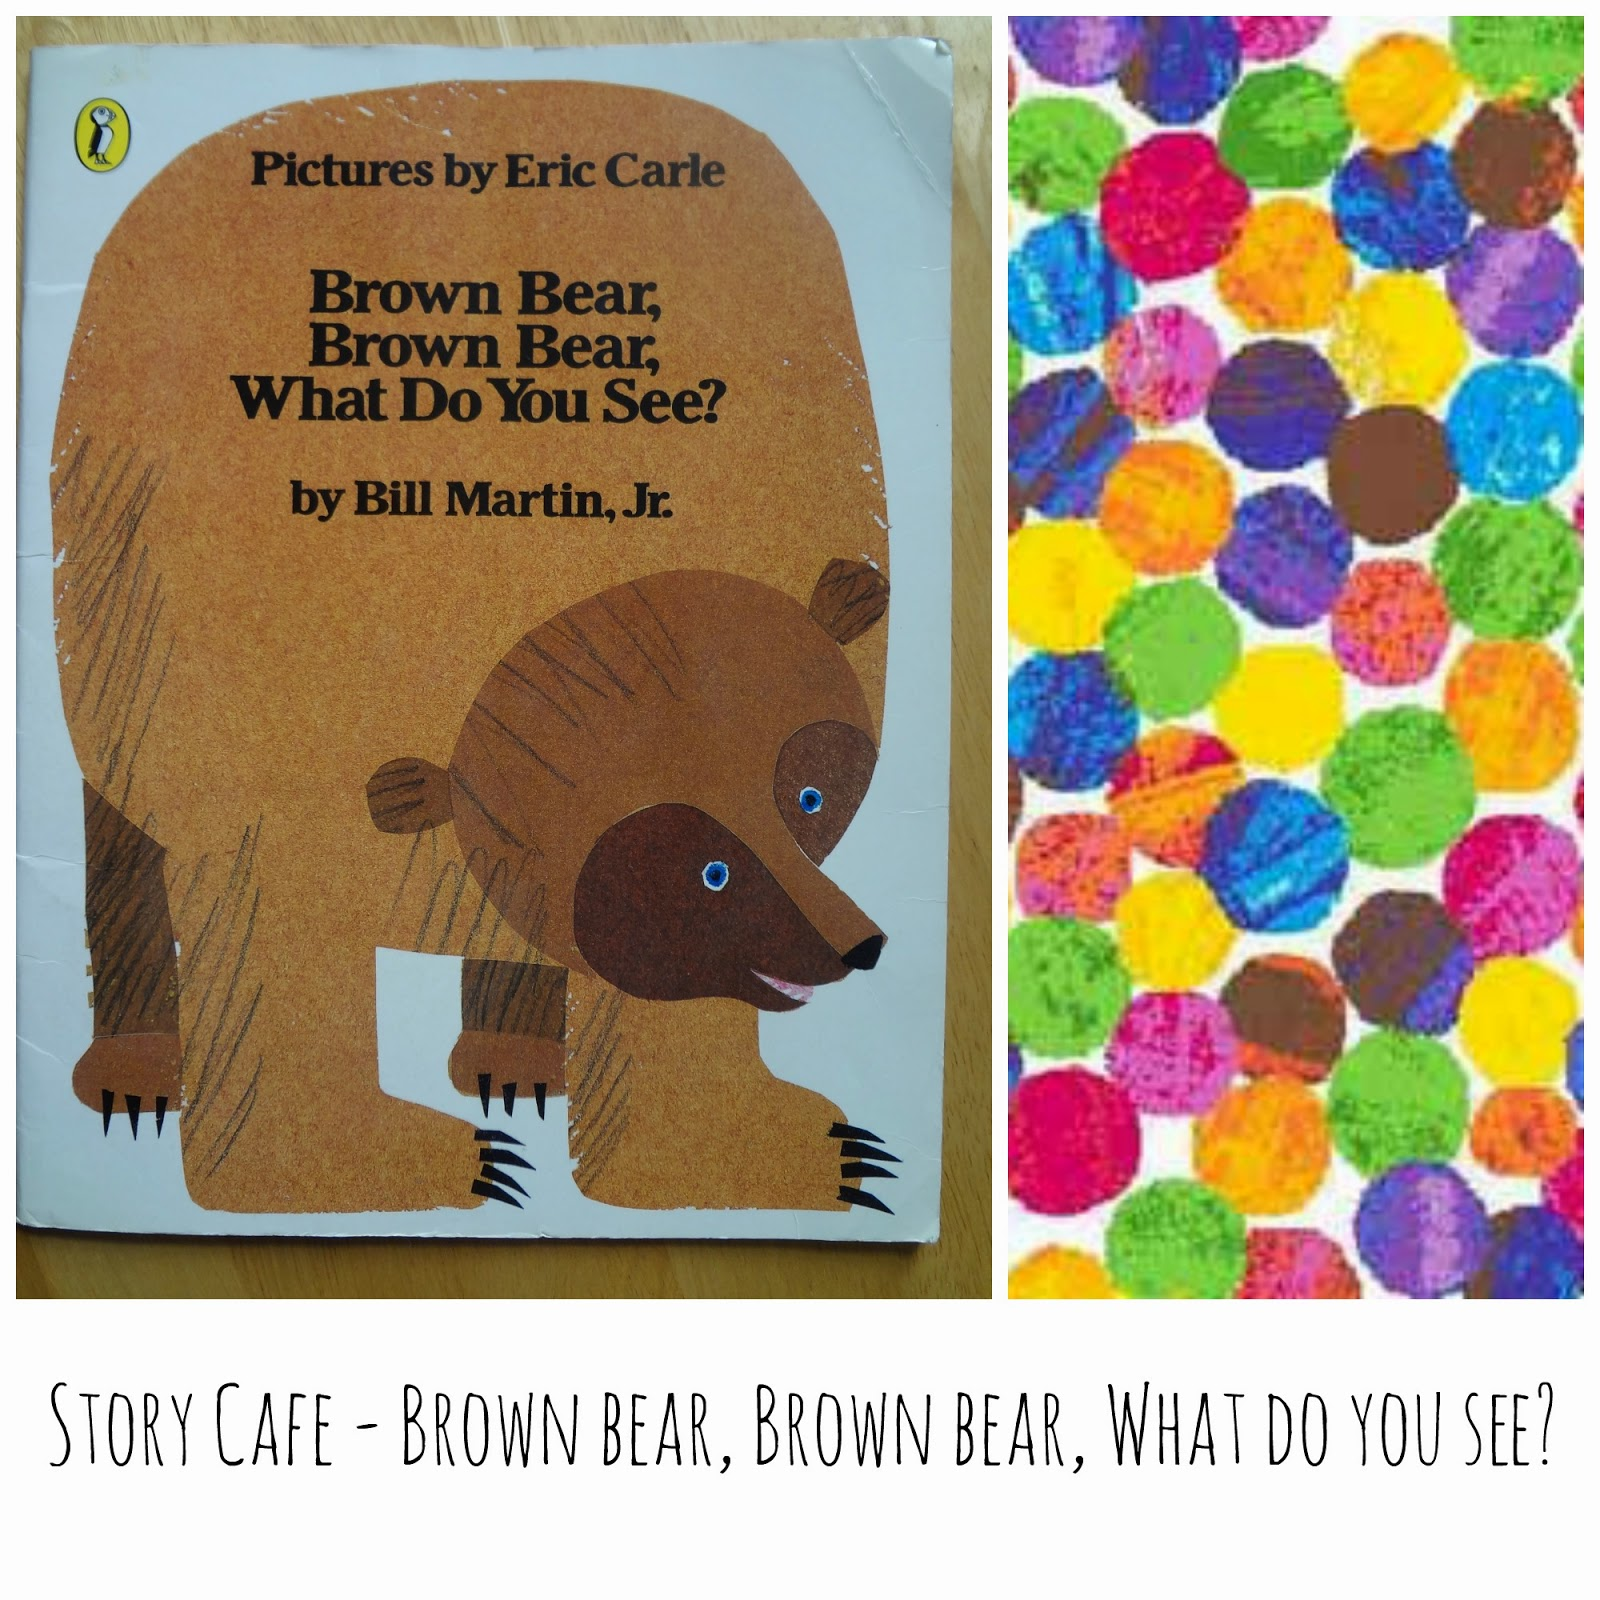 ... stories!: Brown Bear, Brown Bear, What do you see? | Rainbow Cafe